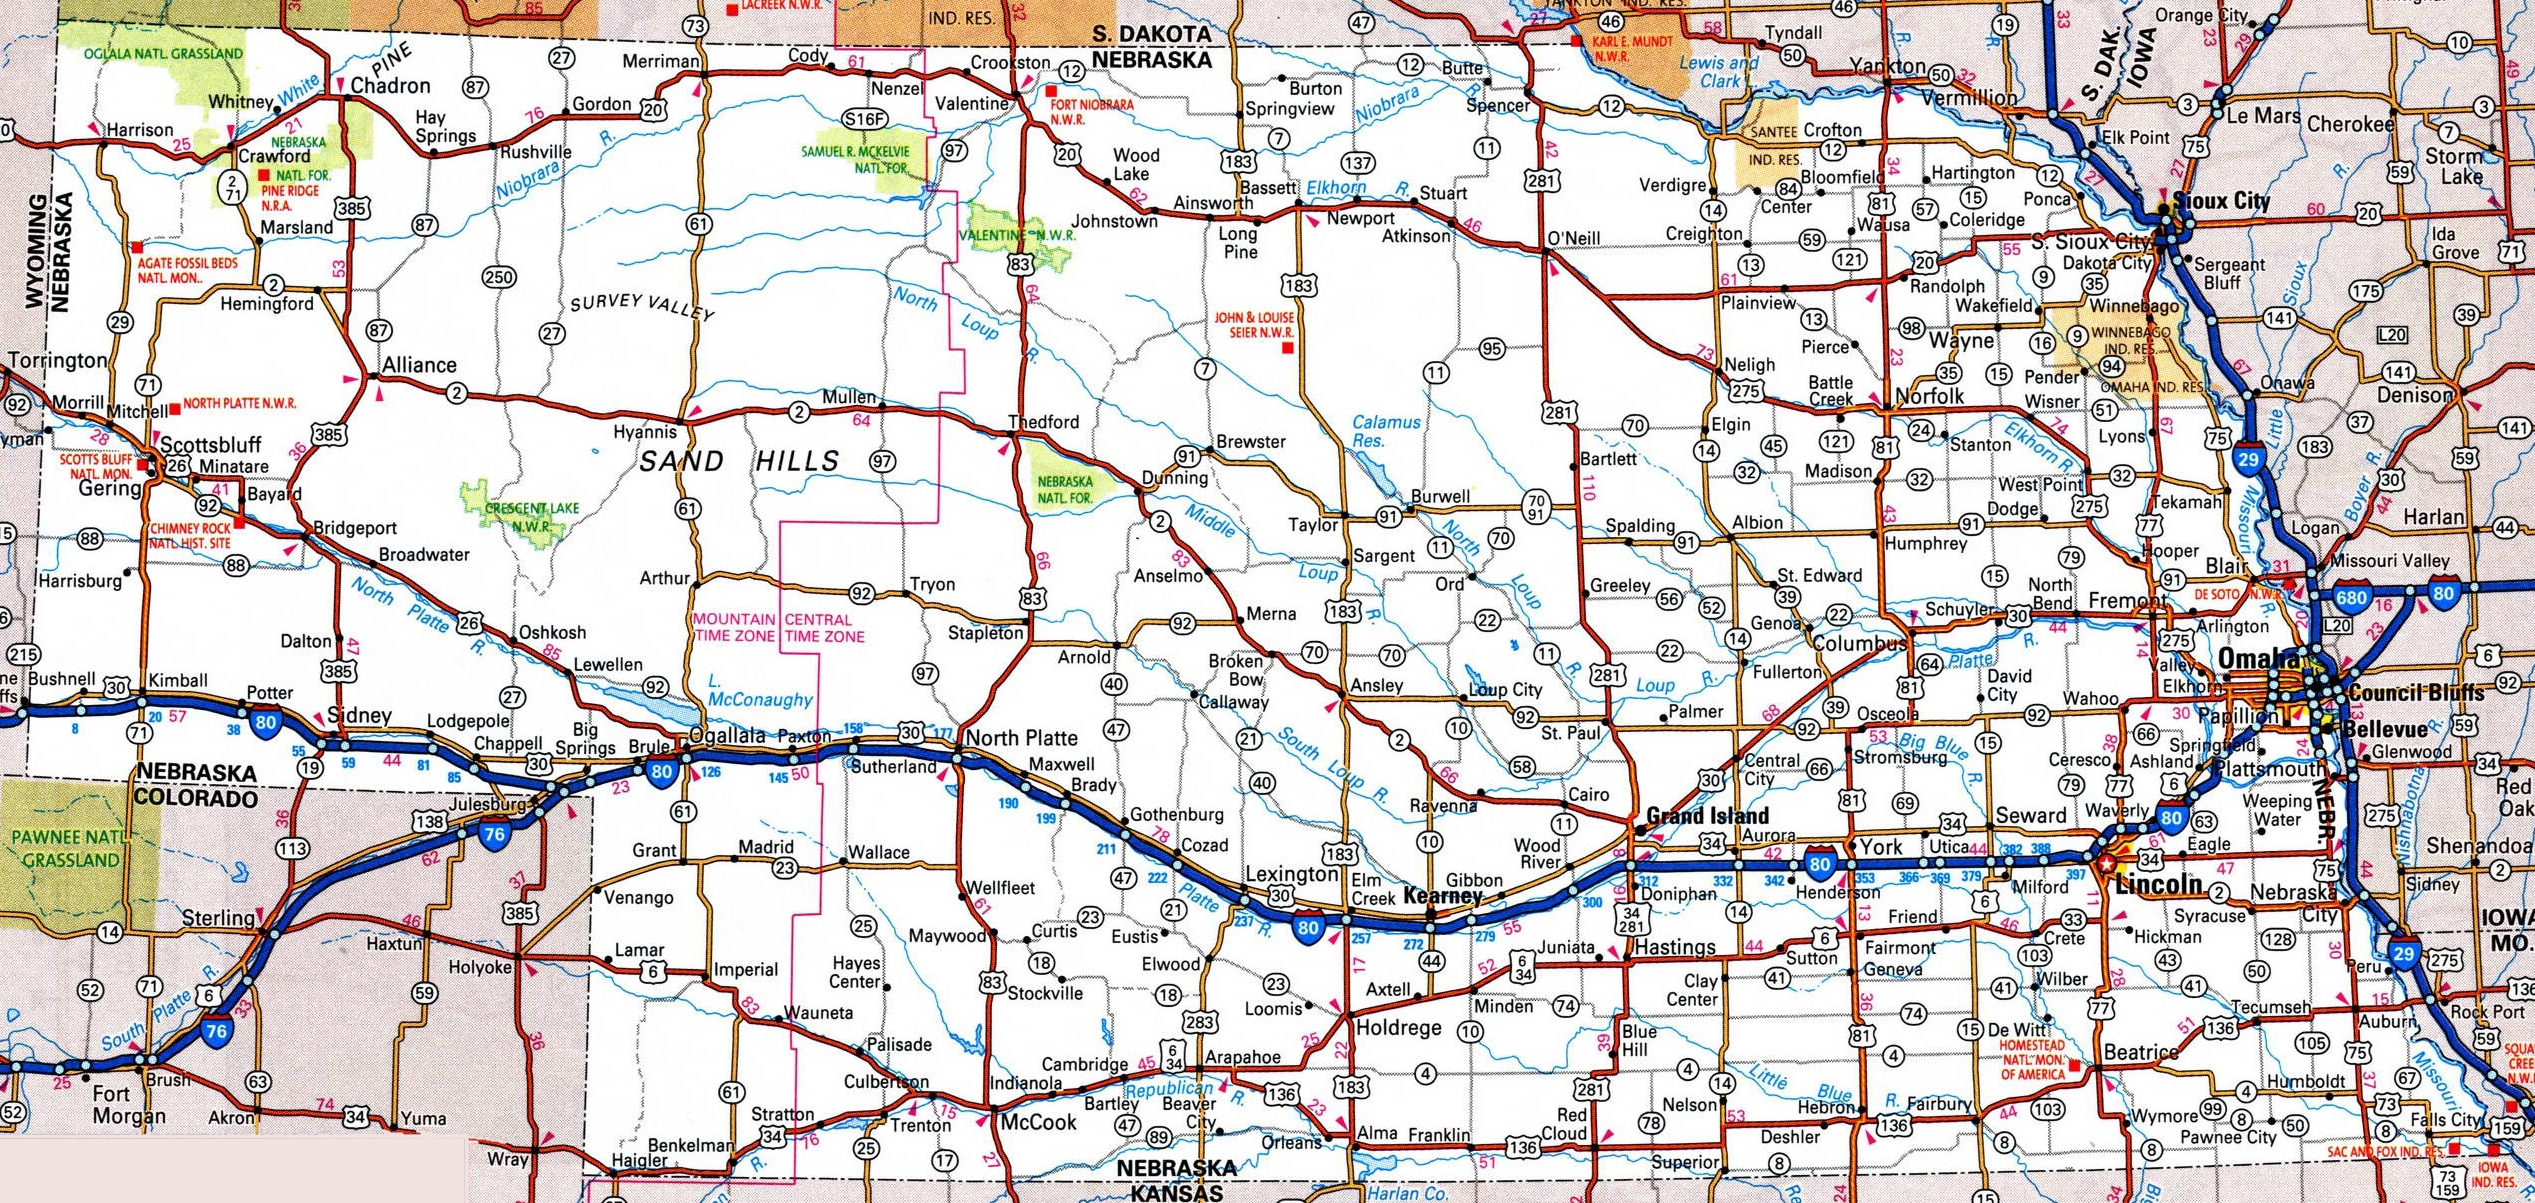 Nebraska Highway Map Nebraska road map Nebraska Highway Map